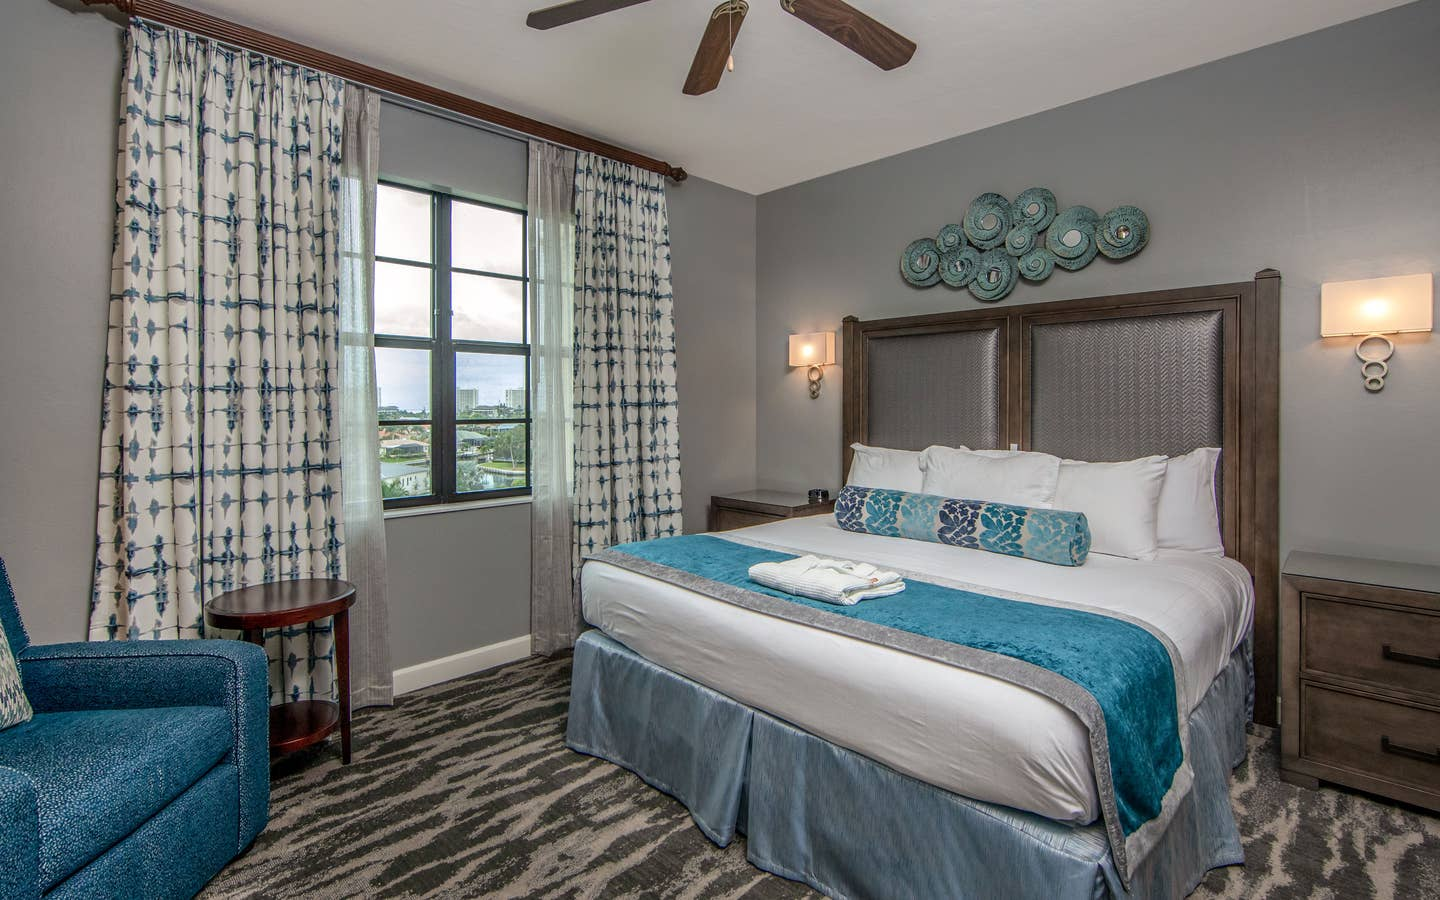 Bedroom with king bed, large window, seating area, and ceiling fan in a three-bedroom villa at Sunset Cove Resort in Marco Island, Florida